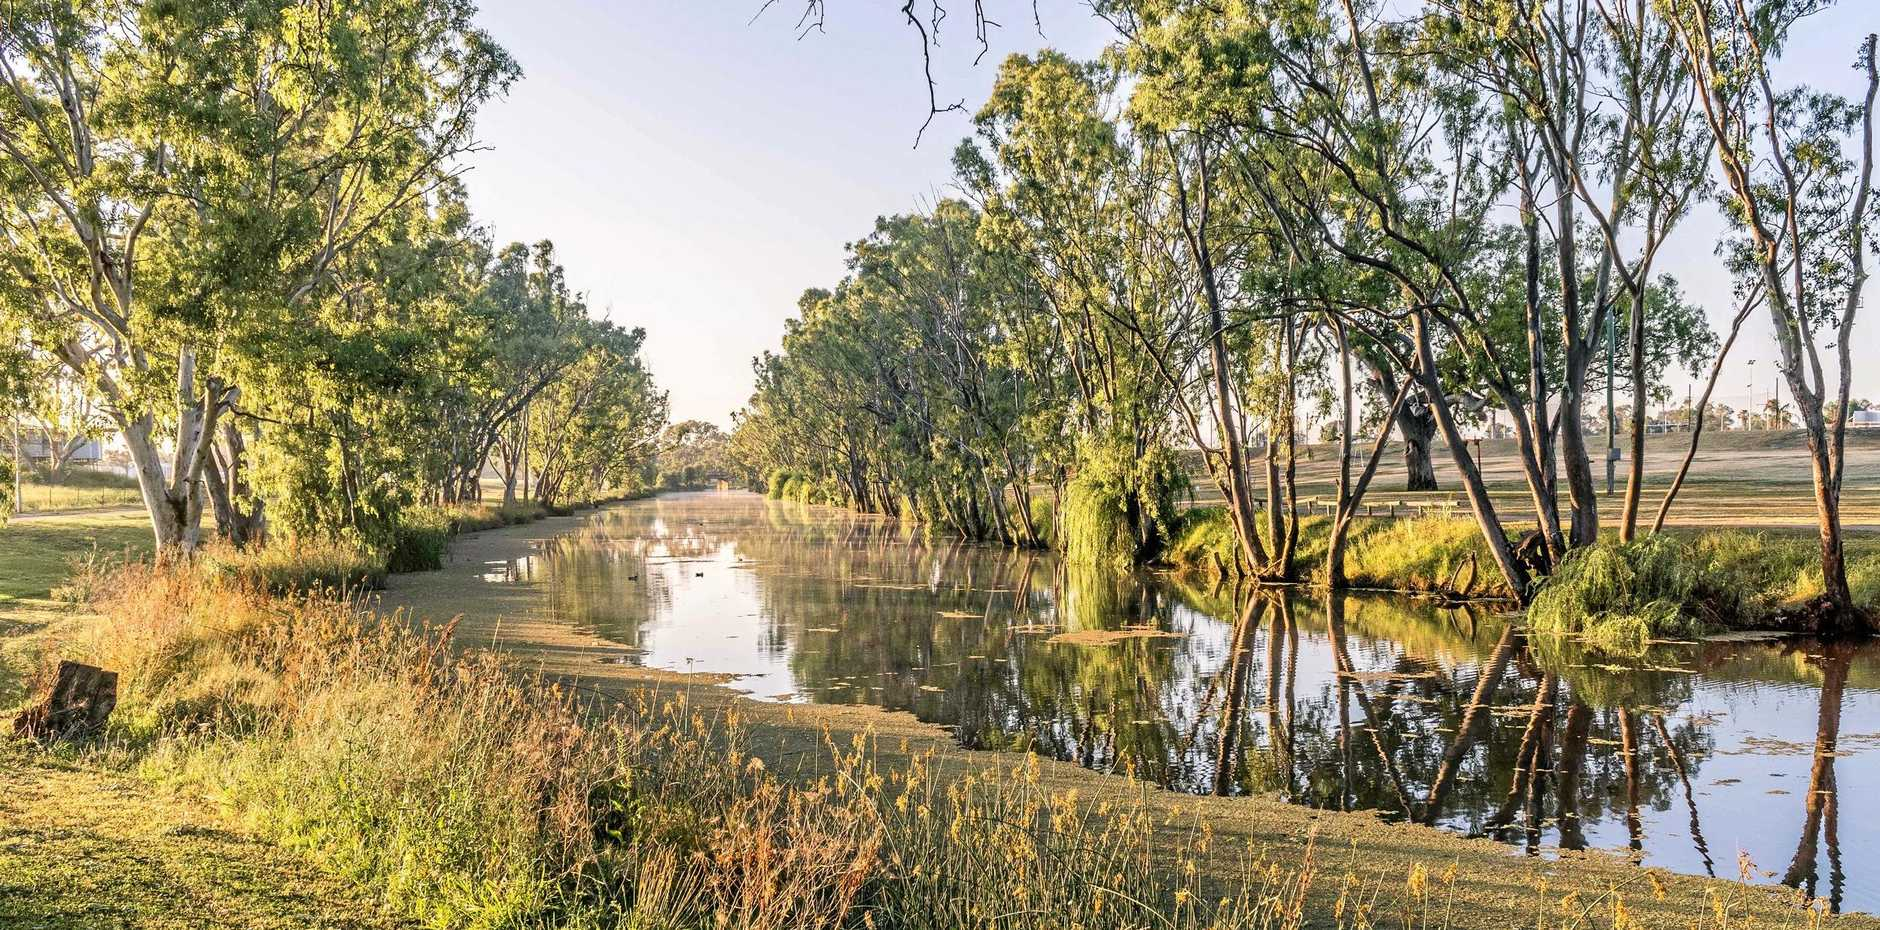 BEFORE THE STORM: Water levels have soared to 70cm above normal levels.